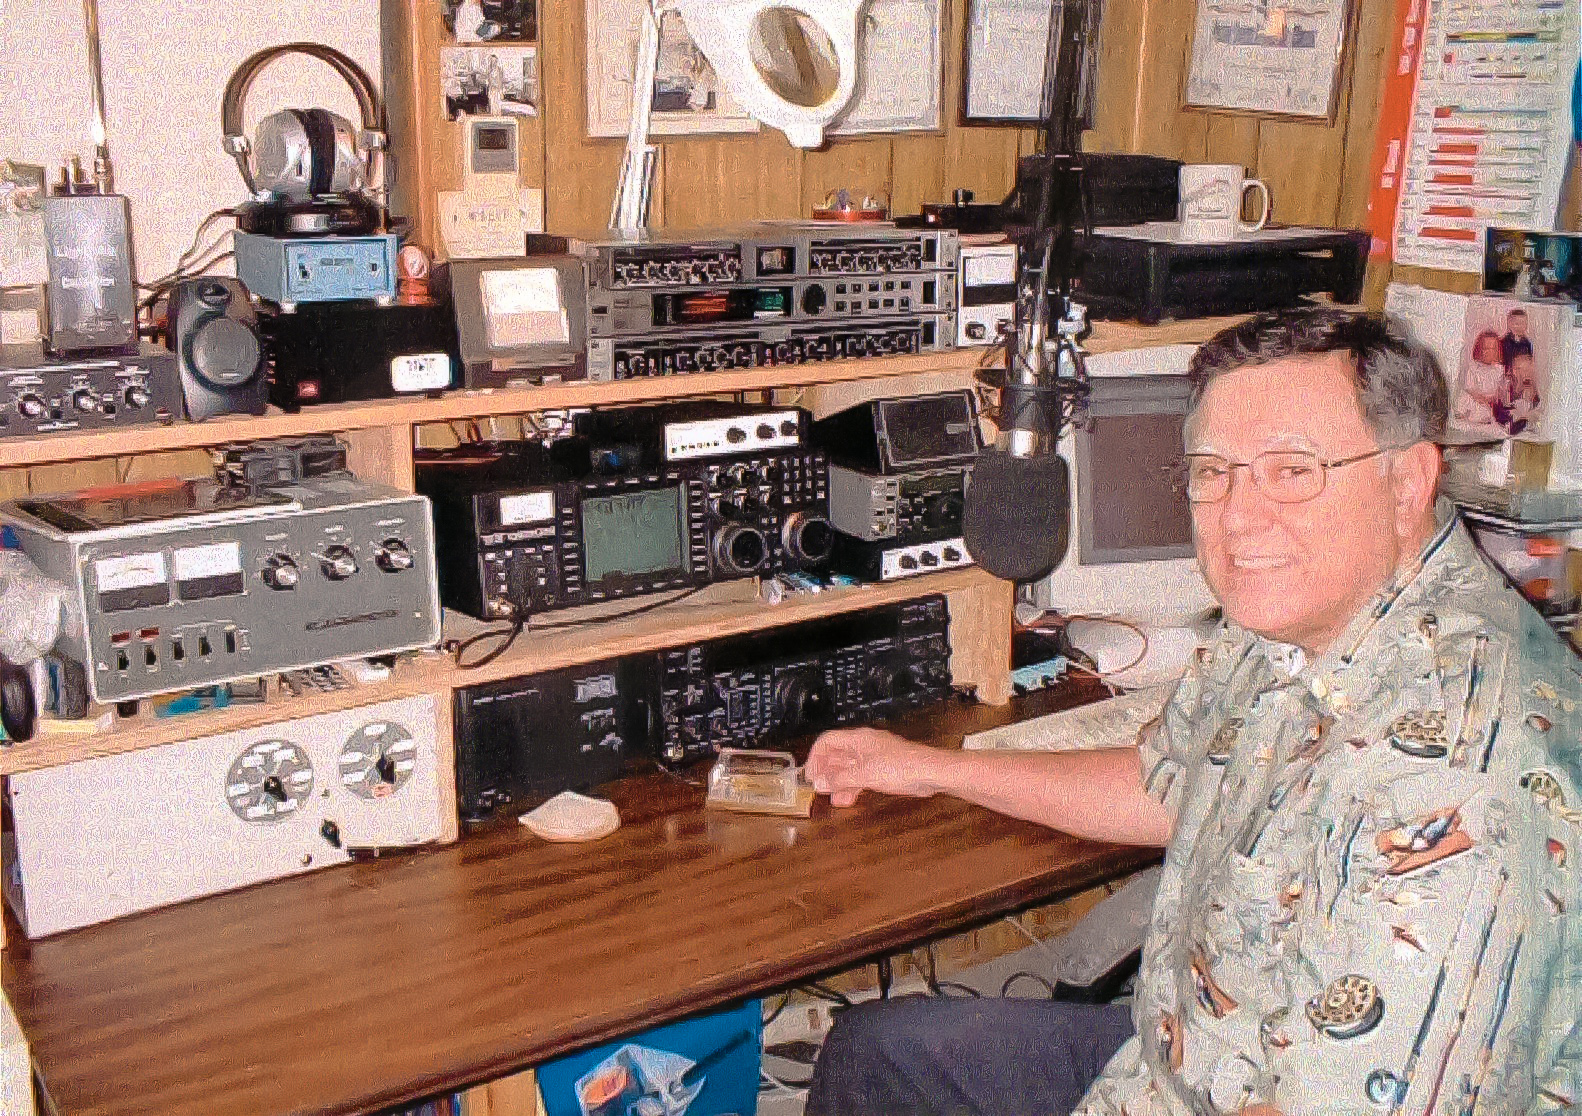 K5ln Callsign Lookup By Qrz Ham Radio Wattmeter And Cell Balancer For Lipo Only Pictures To Pin On Pinterest